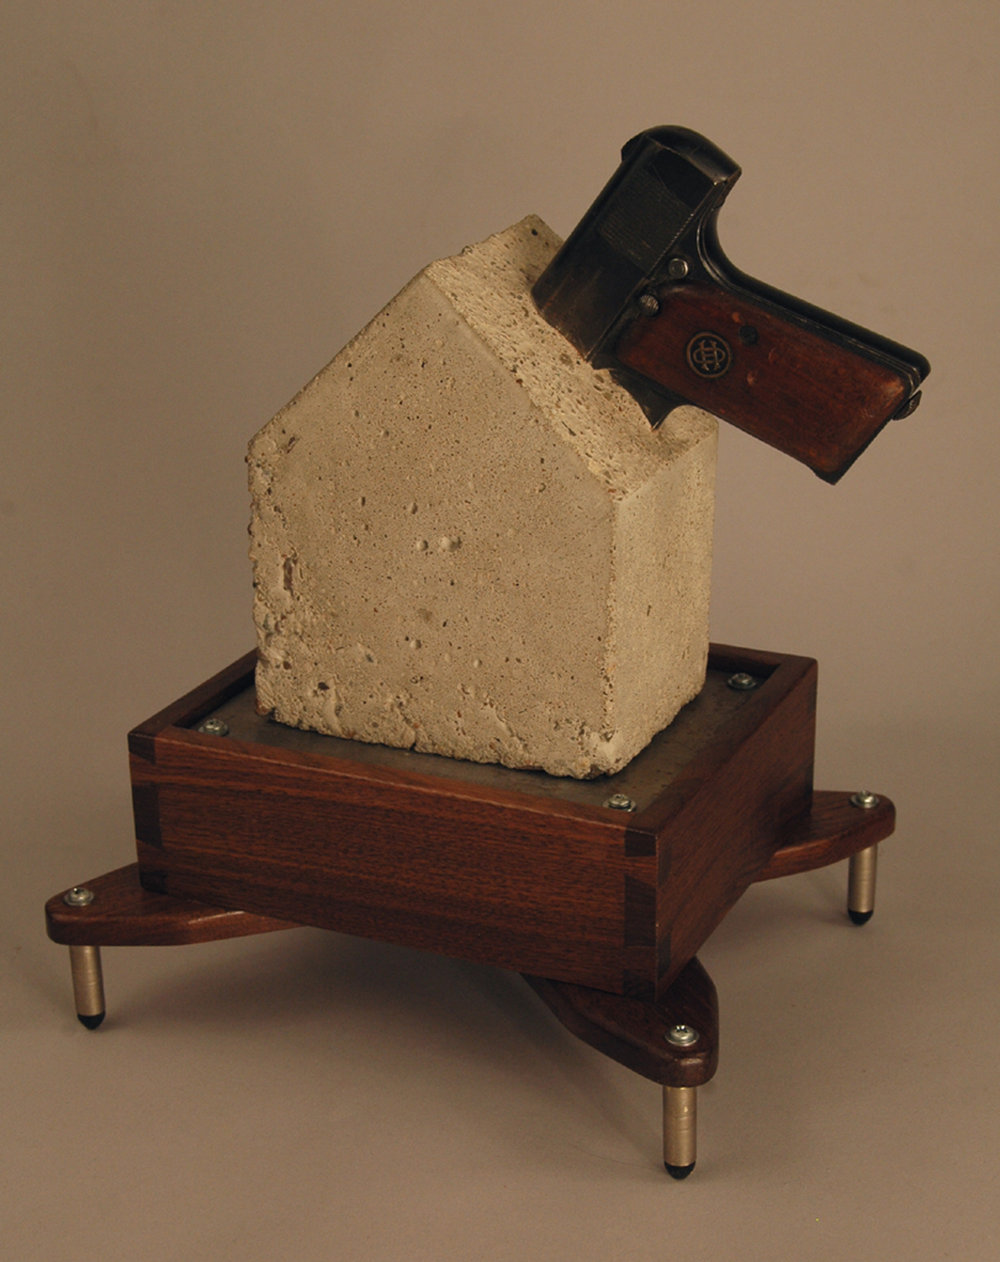 "My contribution to the project:   Safe, Effective, Stylish Device for Handgun Storage in the Home ; 2016; wood, concrete, steel, bullet casings, disabled handgun; 18""h x 17""w x 14""d"